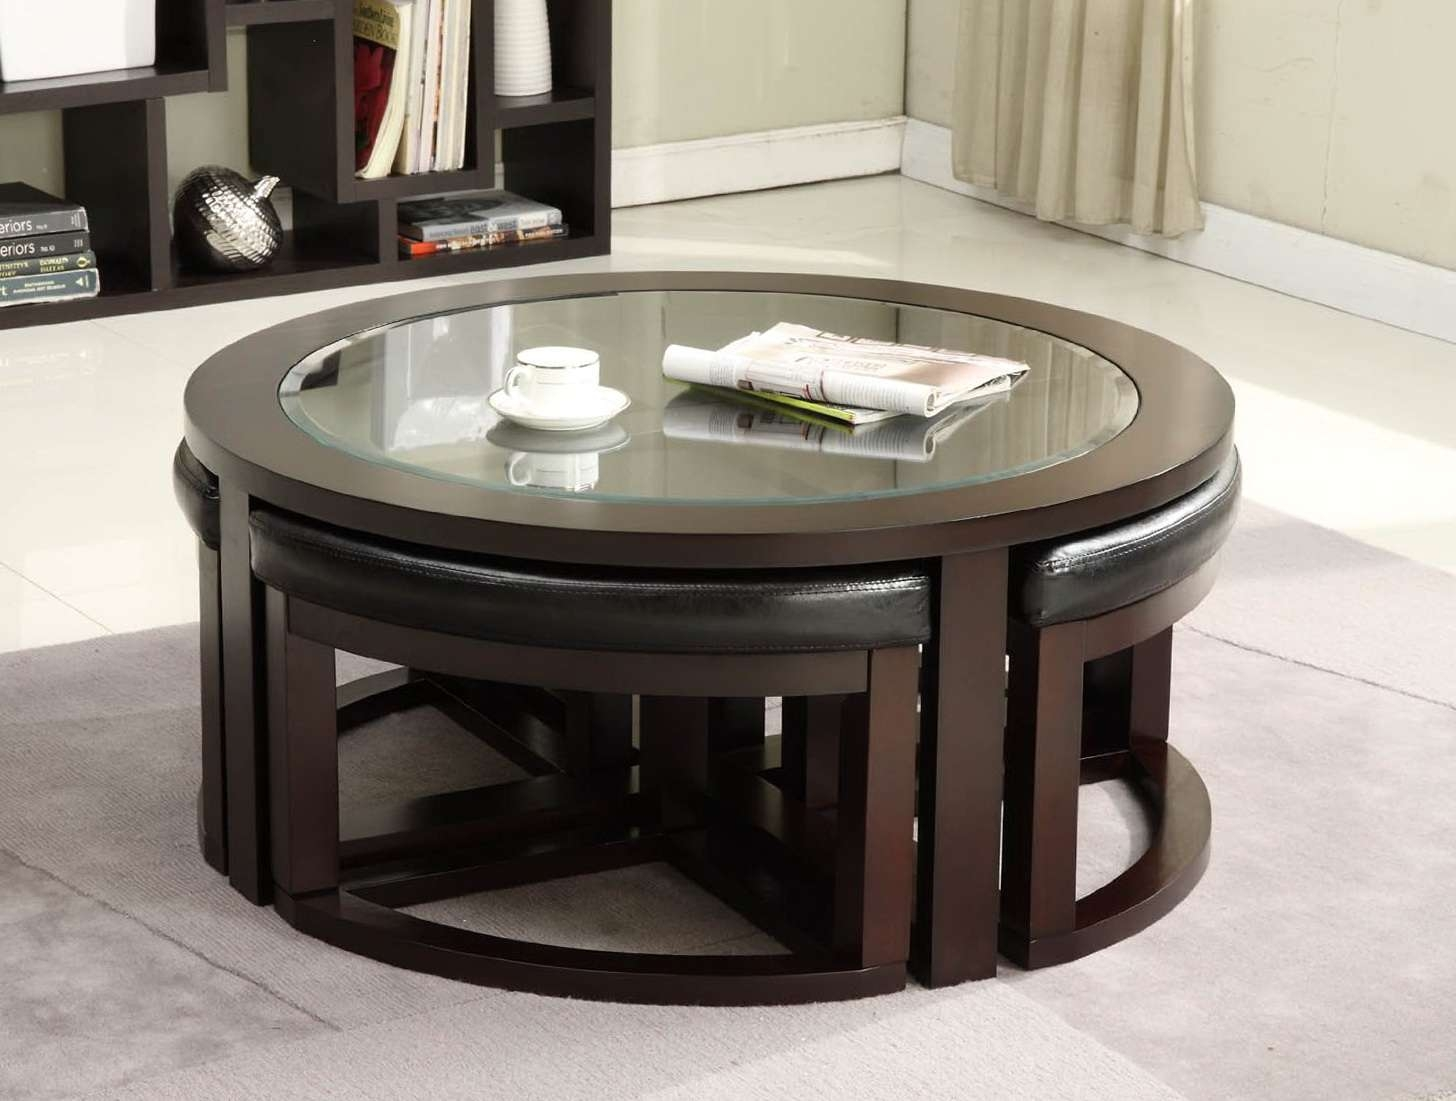 Coffee Tables : Splendid Round Coffee Table Ottomans Underneath Regarding Most Recent Coffee Tables With Seating And Storage (View 12 of 20)